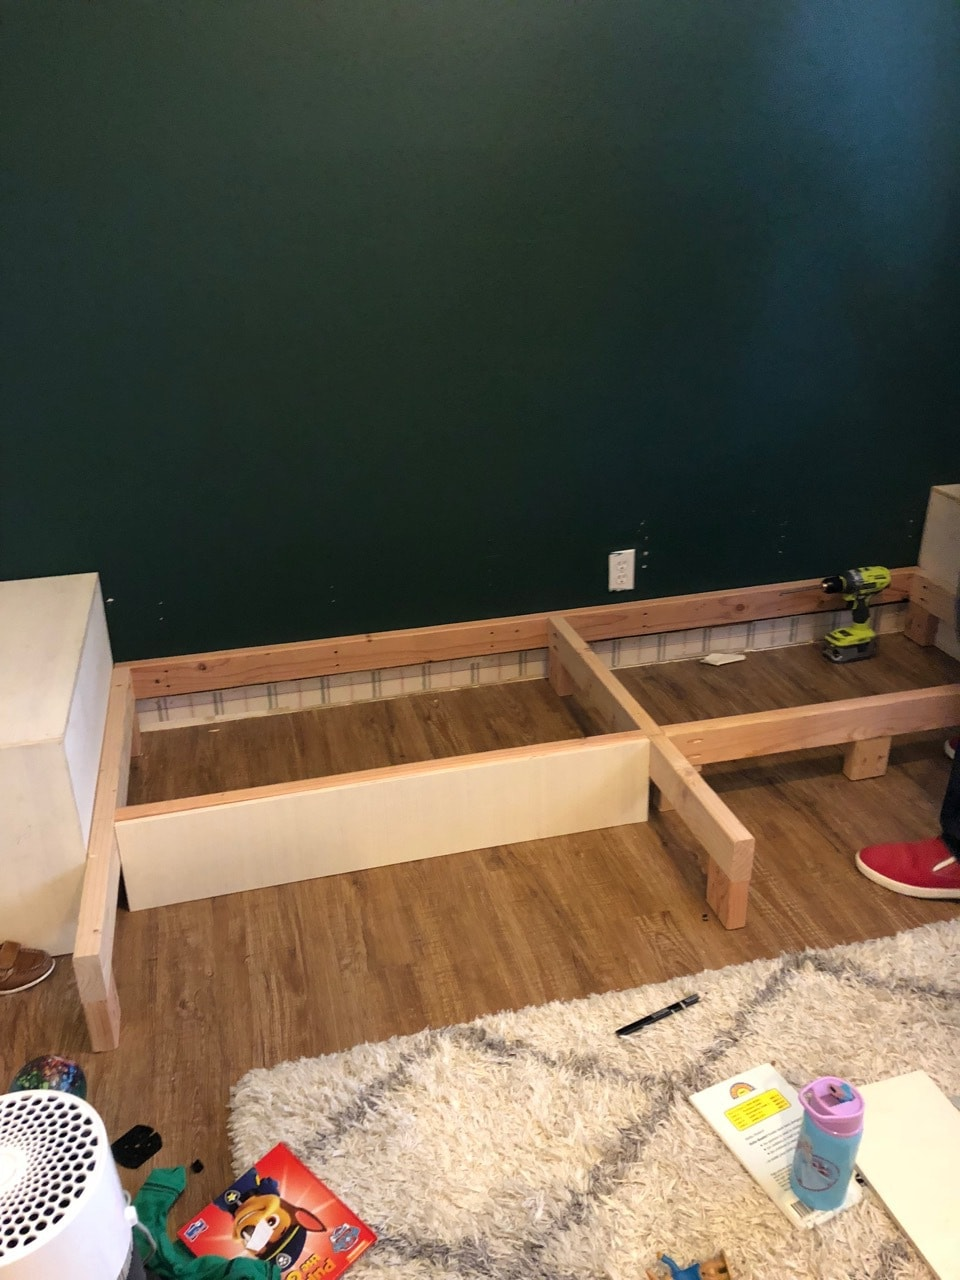 Framing for DIY built in shelves with plywood